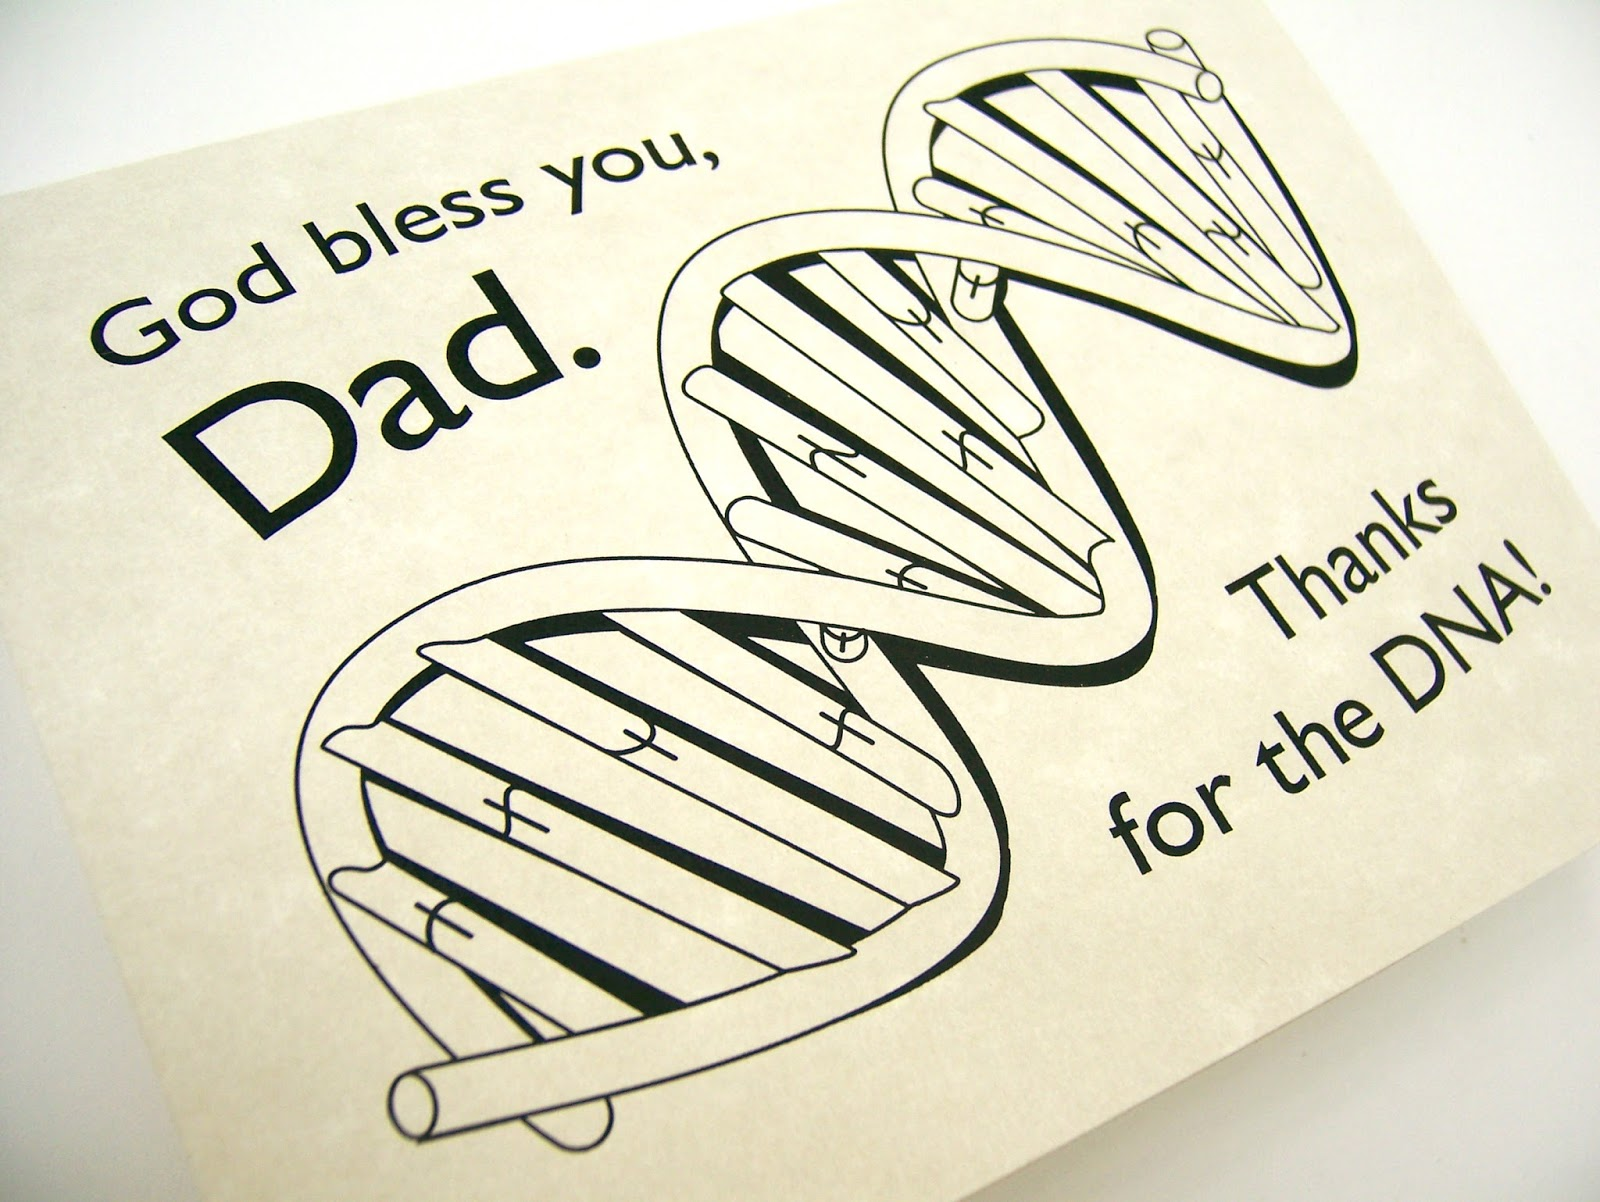 Family tree wording ideas for handmade cards favorite bible verses dna clip art for birthday fathers day or any card for kristyandbryce Images